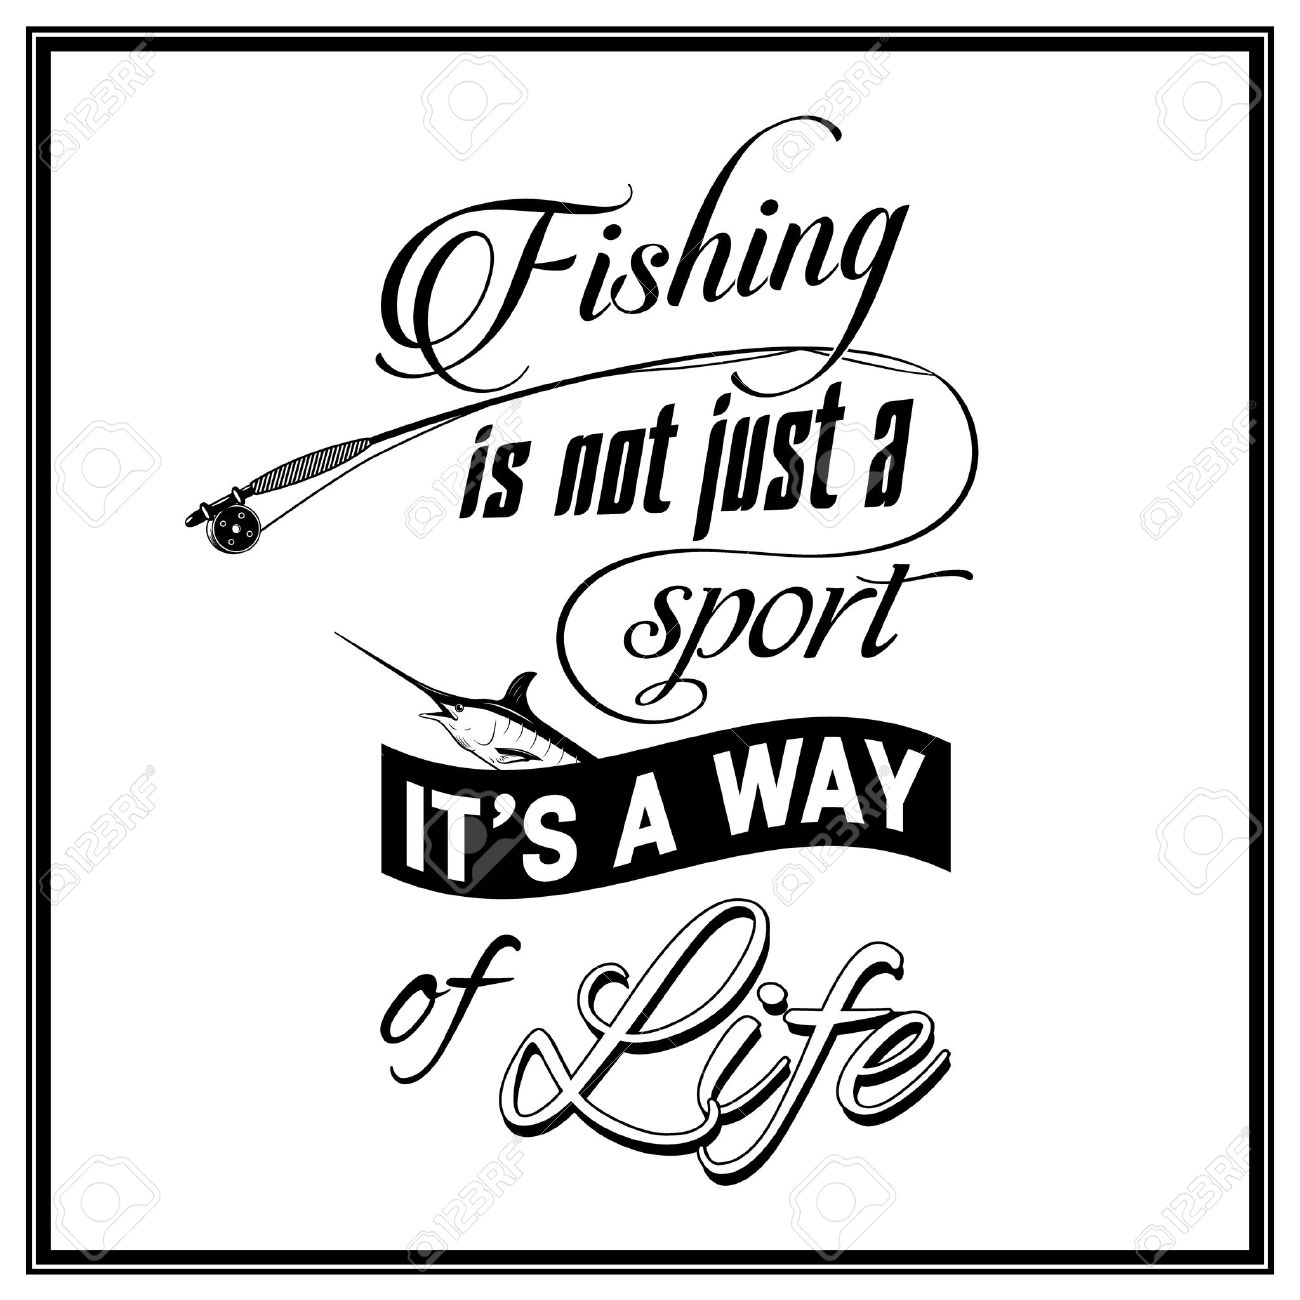 Fishing Is Not Just A Sport, It S A Way Of Life.